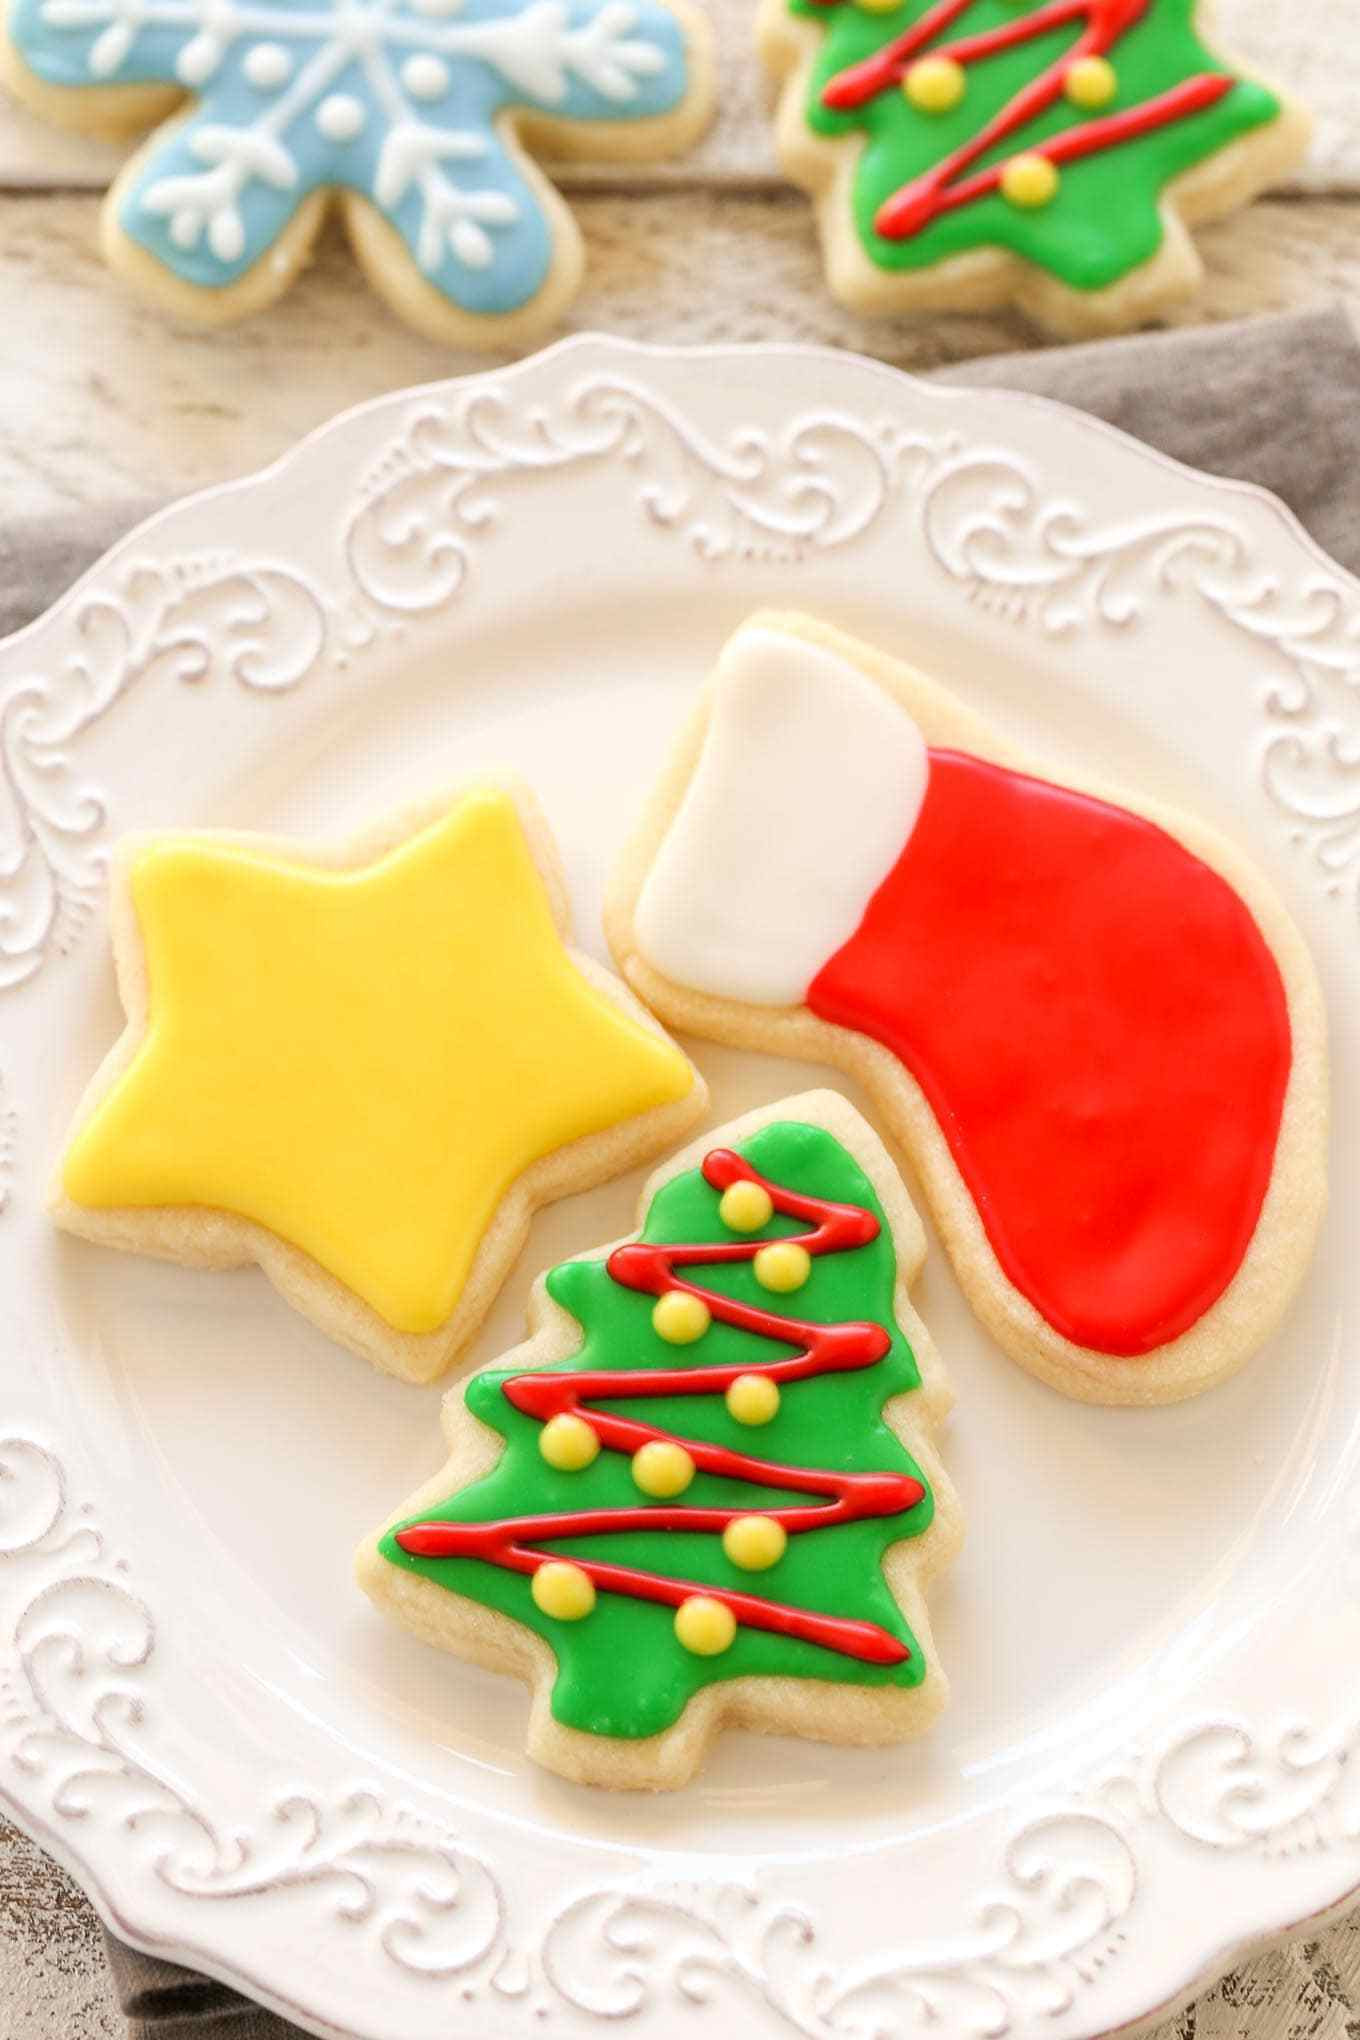 Sugar Christmas Cookies Recipe  Soft Christmas Cut Out Sugar Cookies Live Well Bake ten